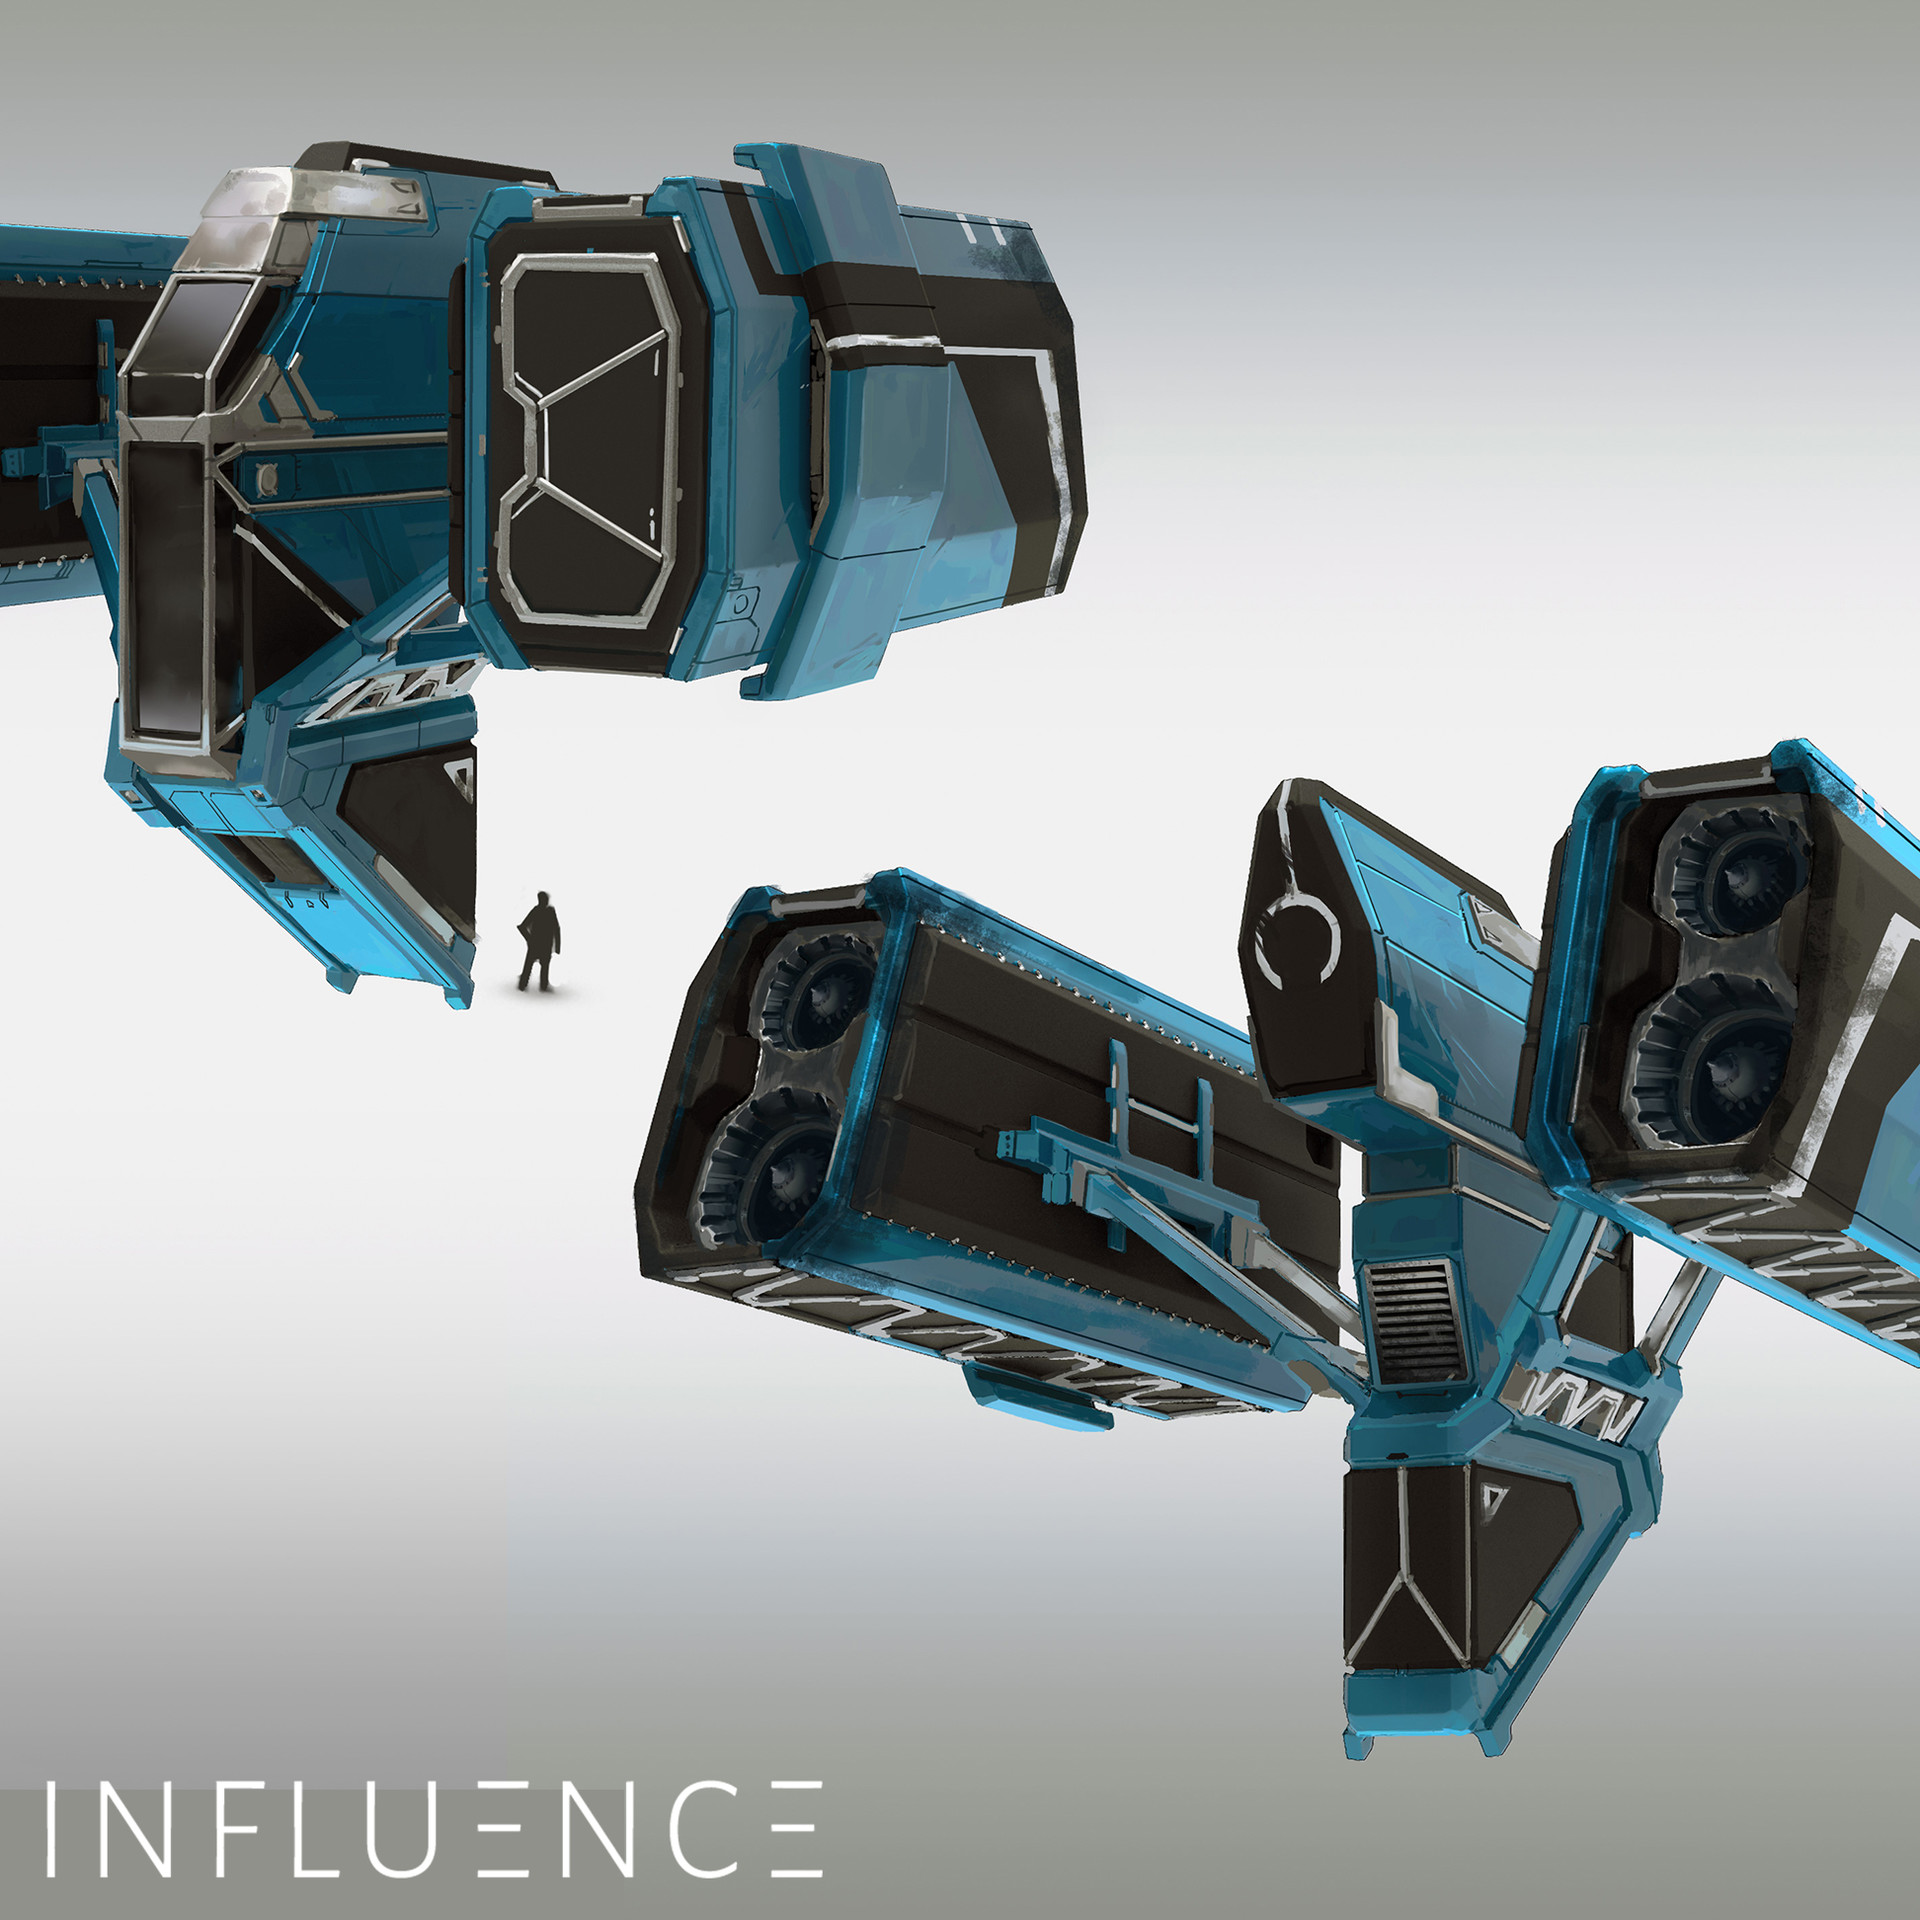 Shuttle_Influence